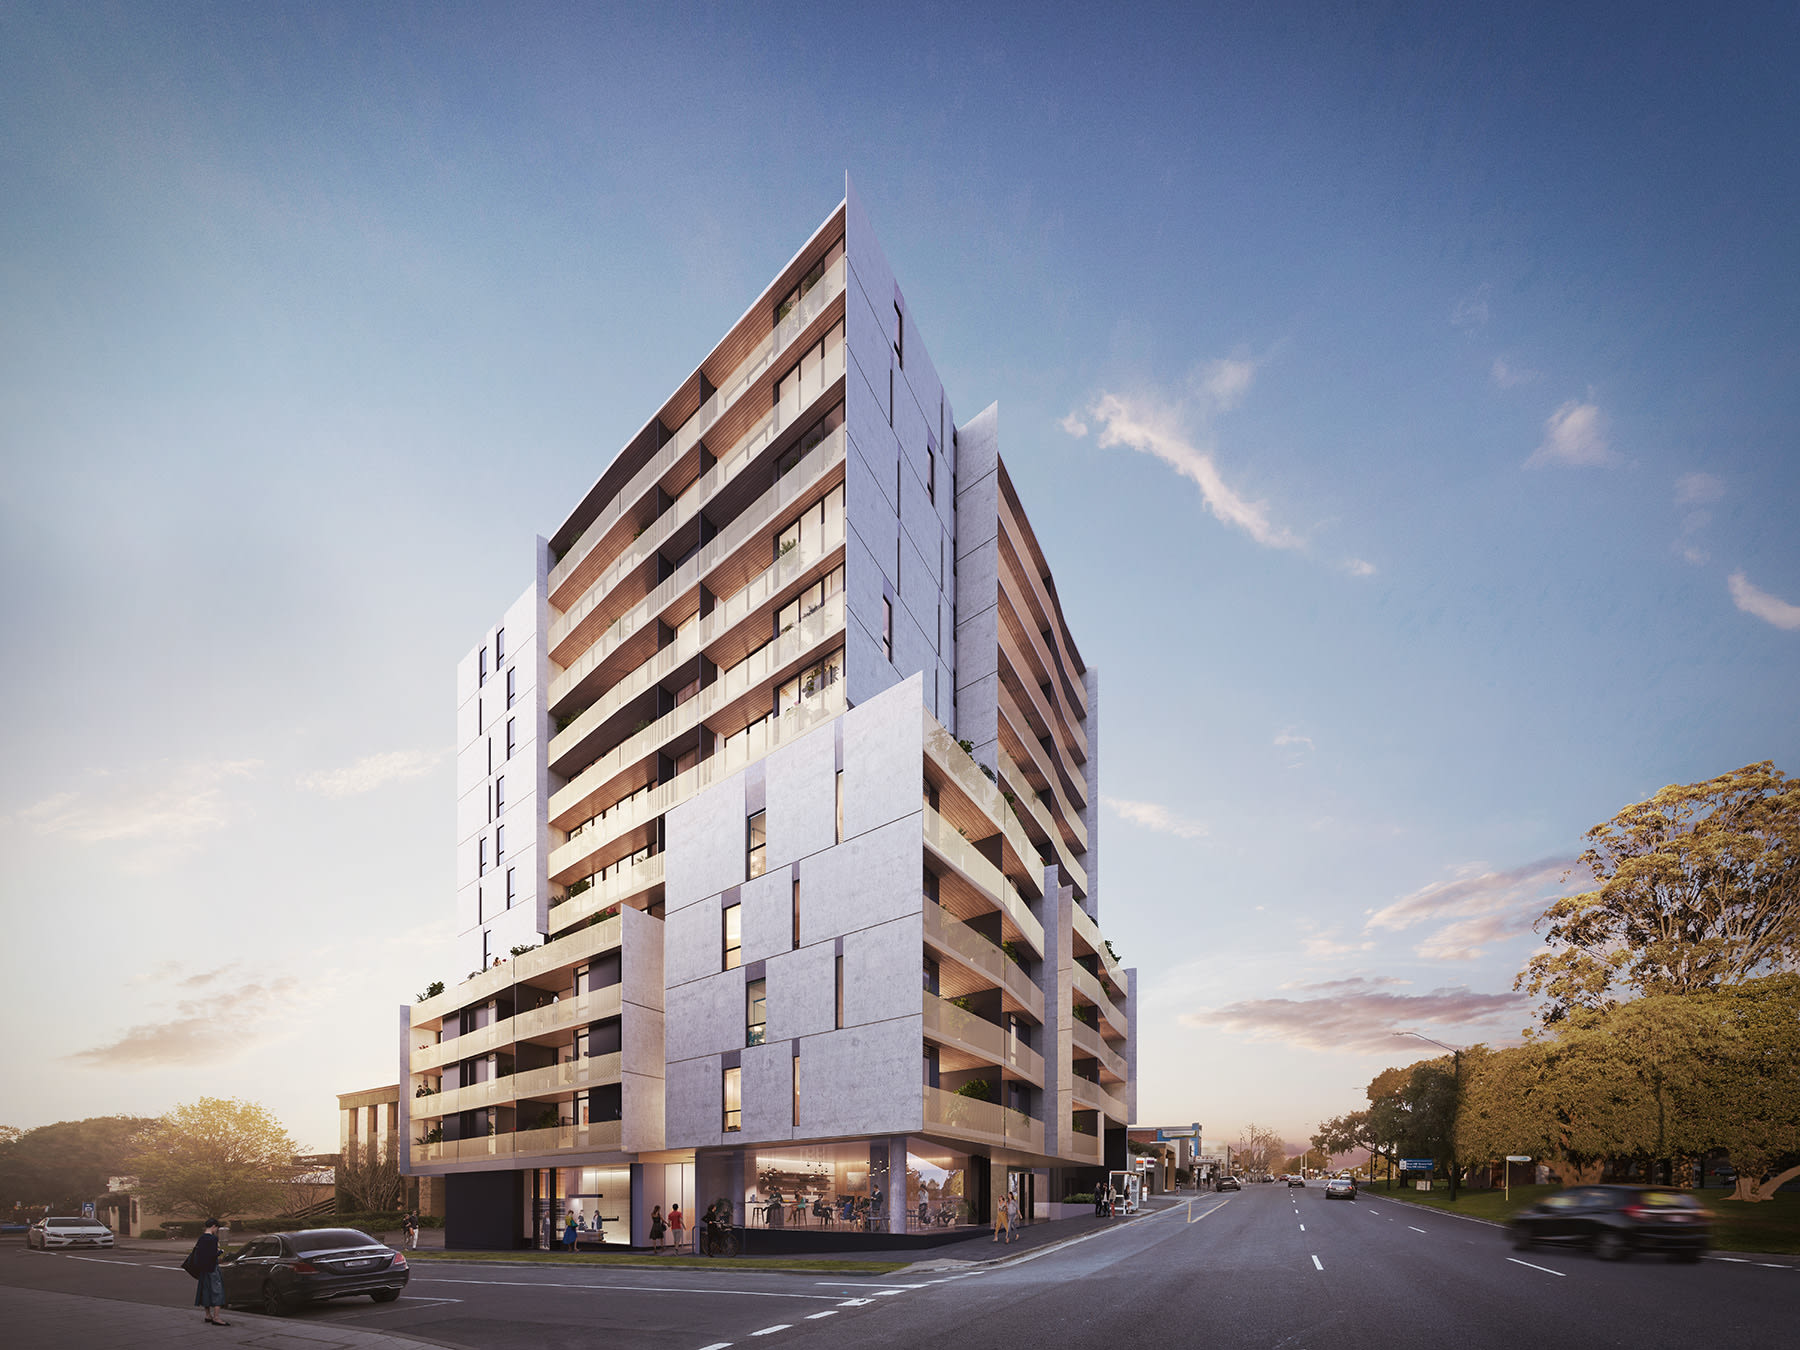 999 Box Hill adds to the suburb's growing residential stock